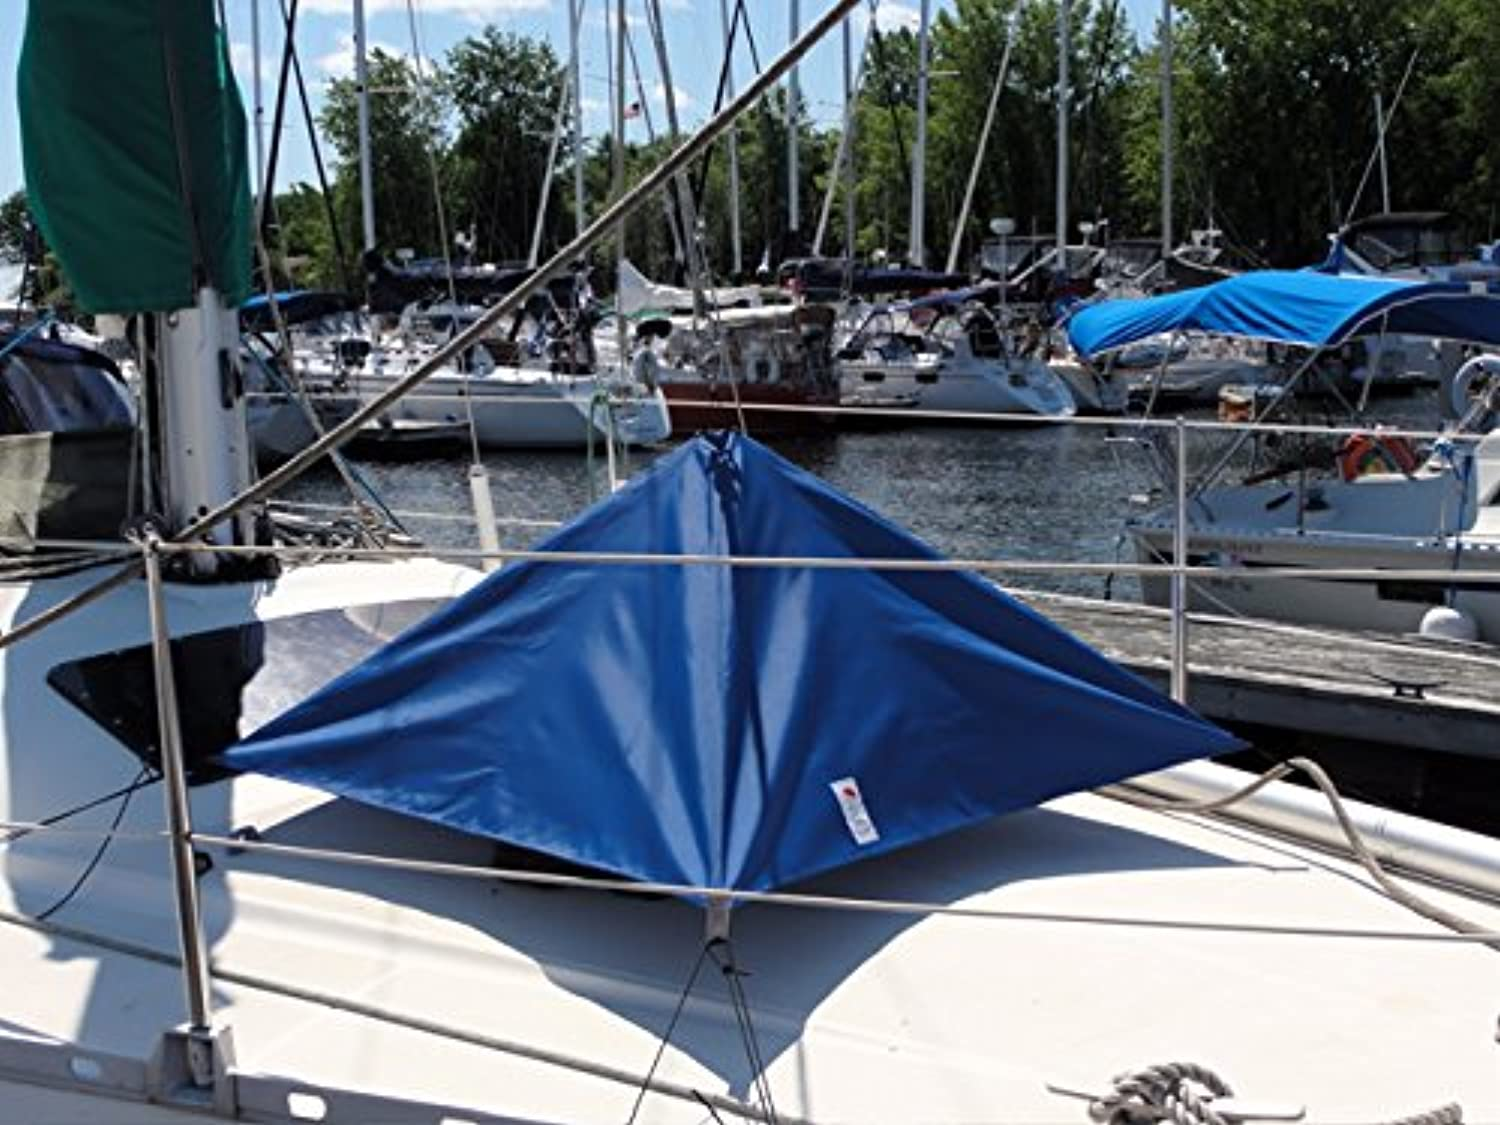 (Royal blueee)  HATCH UMBRELLA FOR POWERBOAT AND SAILBOAT